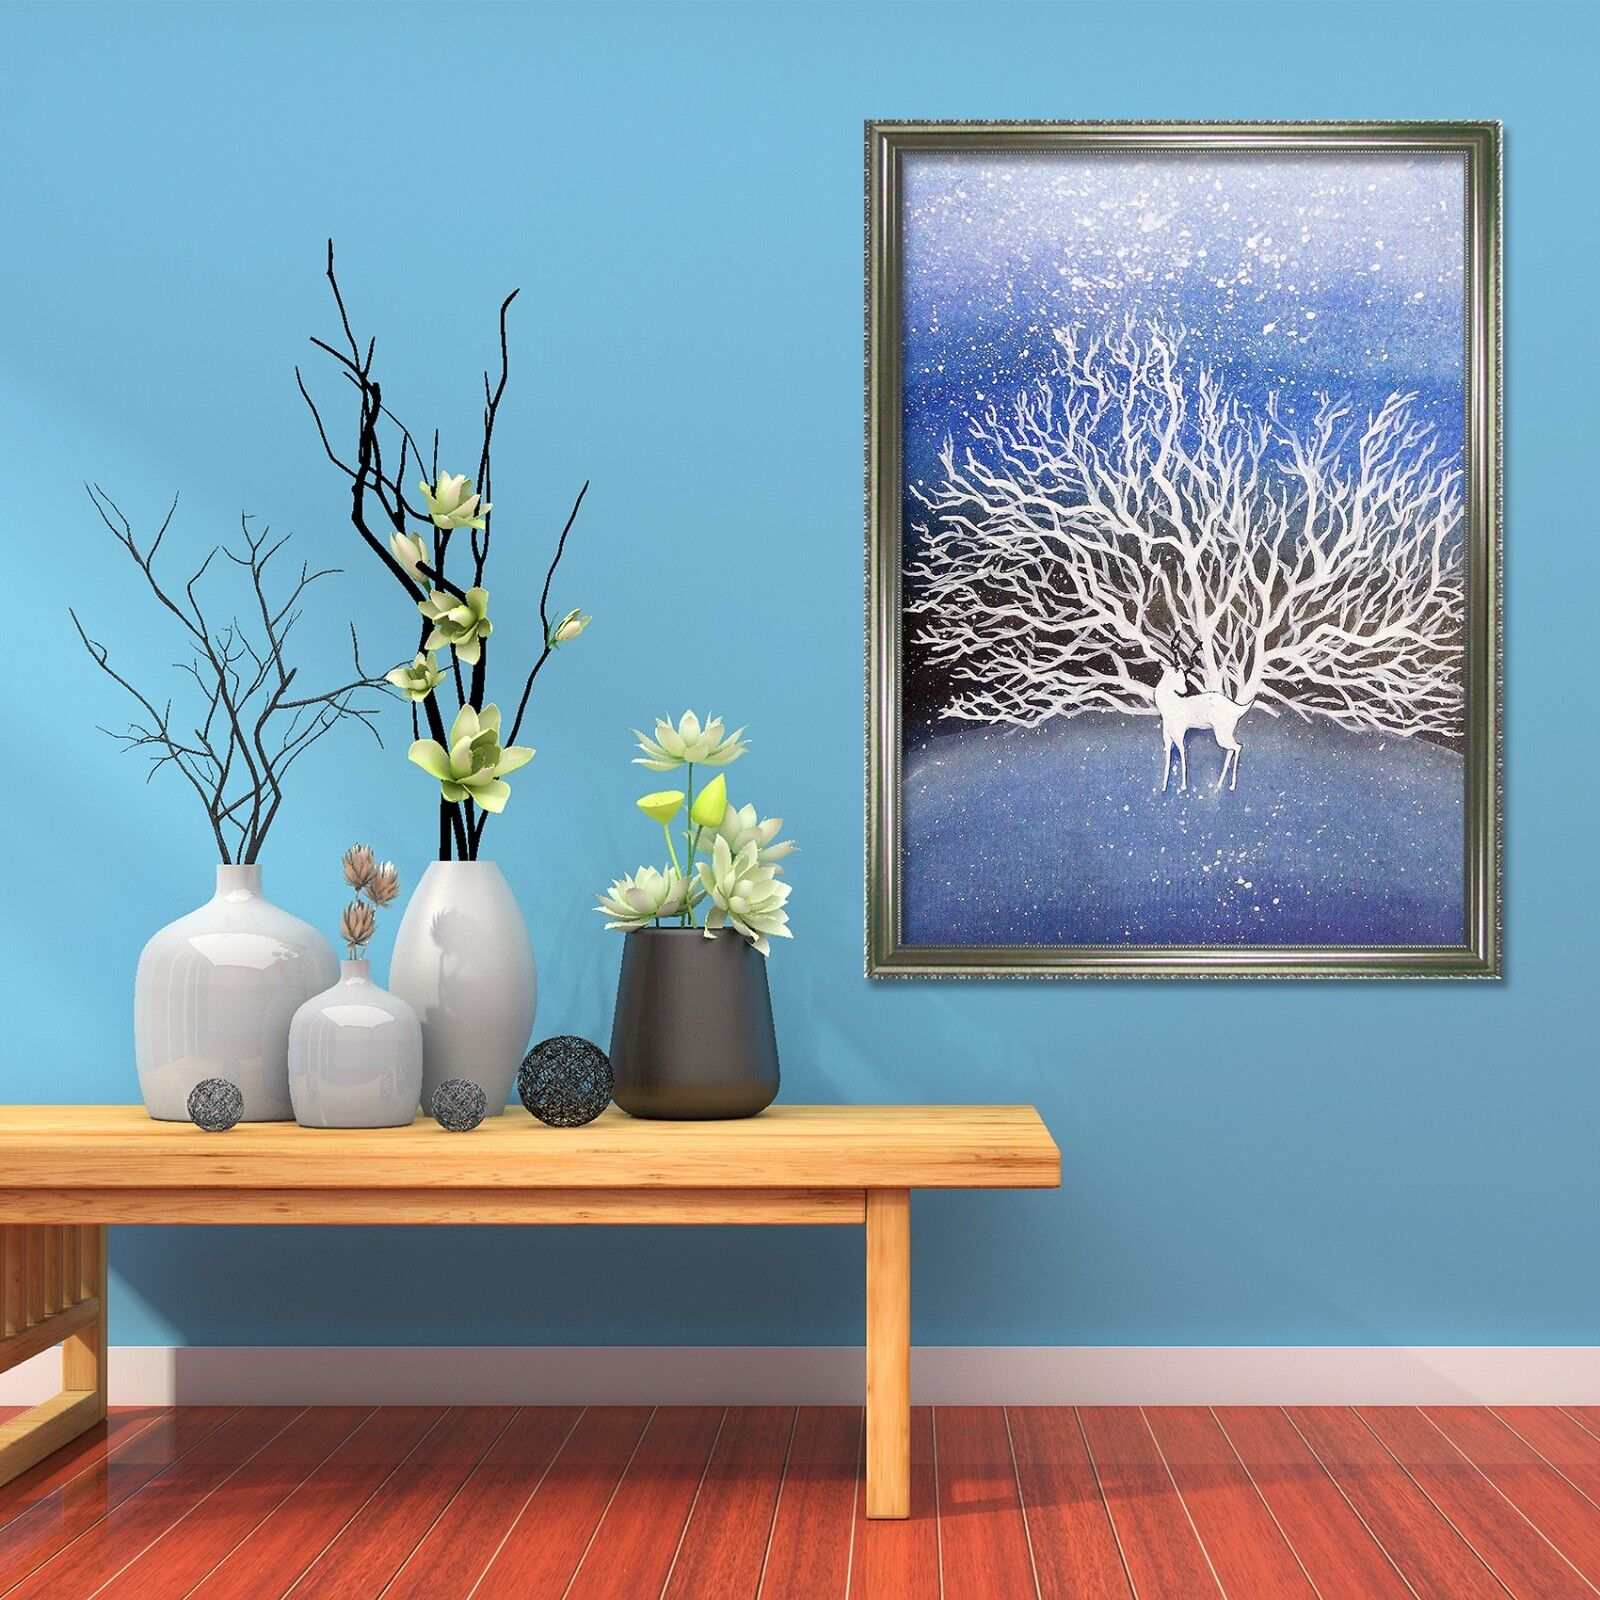 3D Weiß Branches 47 Framed Poster Home Decor Print Painting Art AJ UK